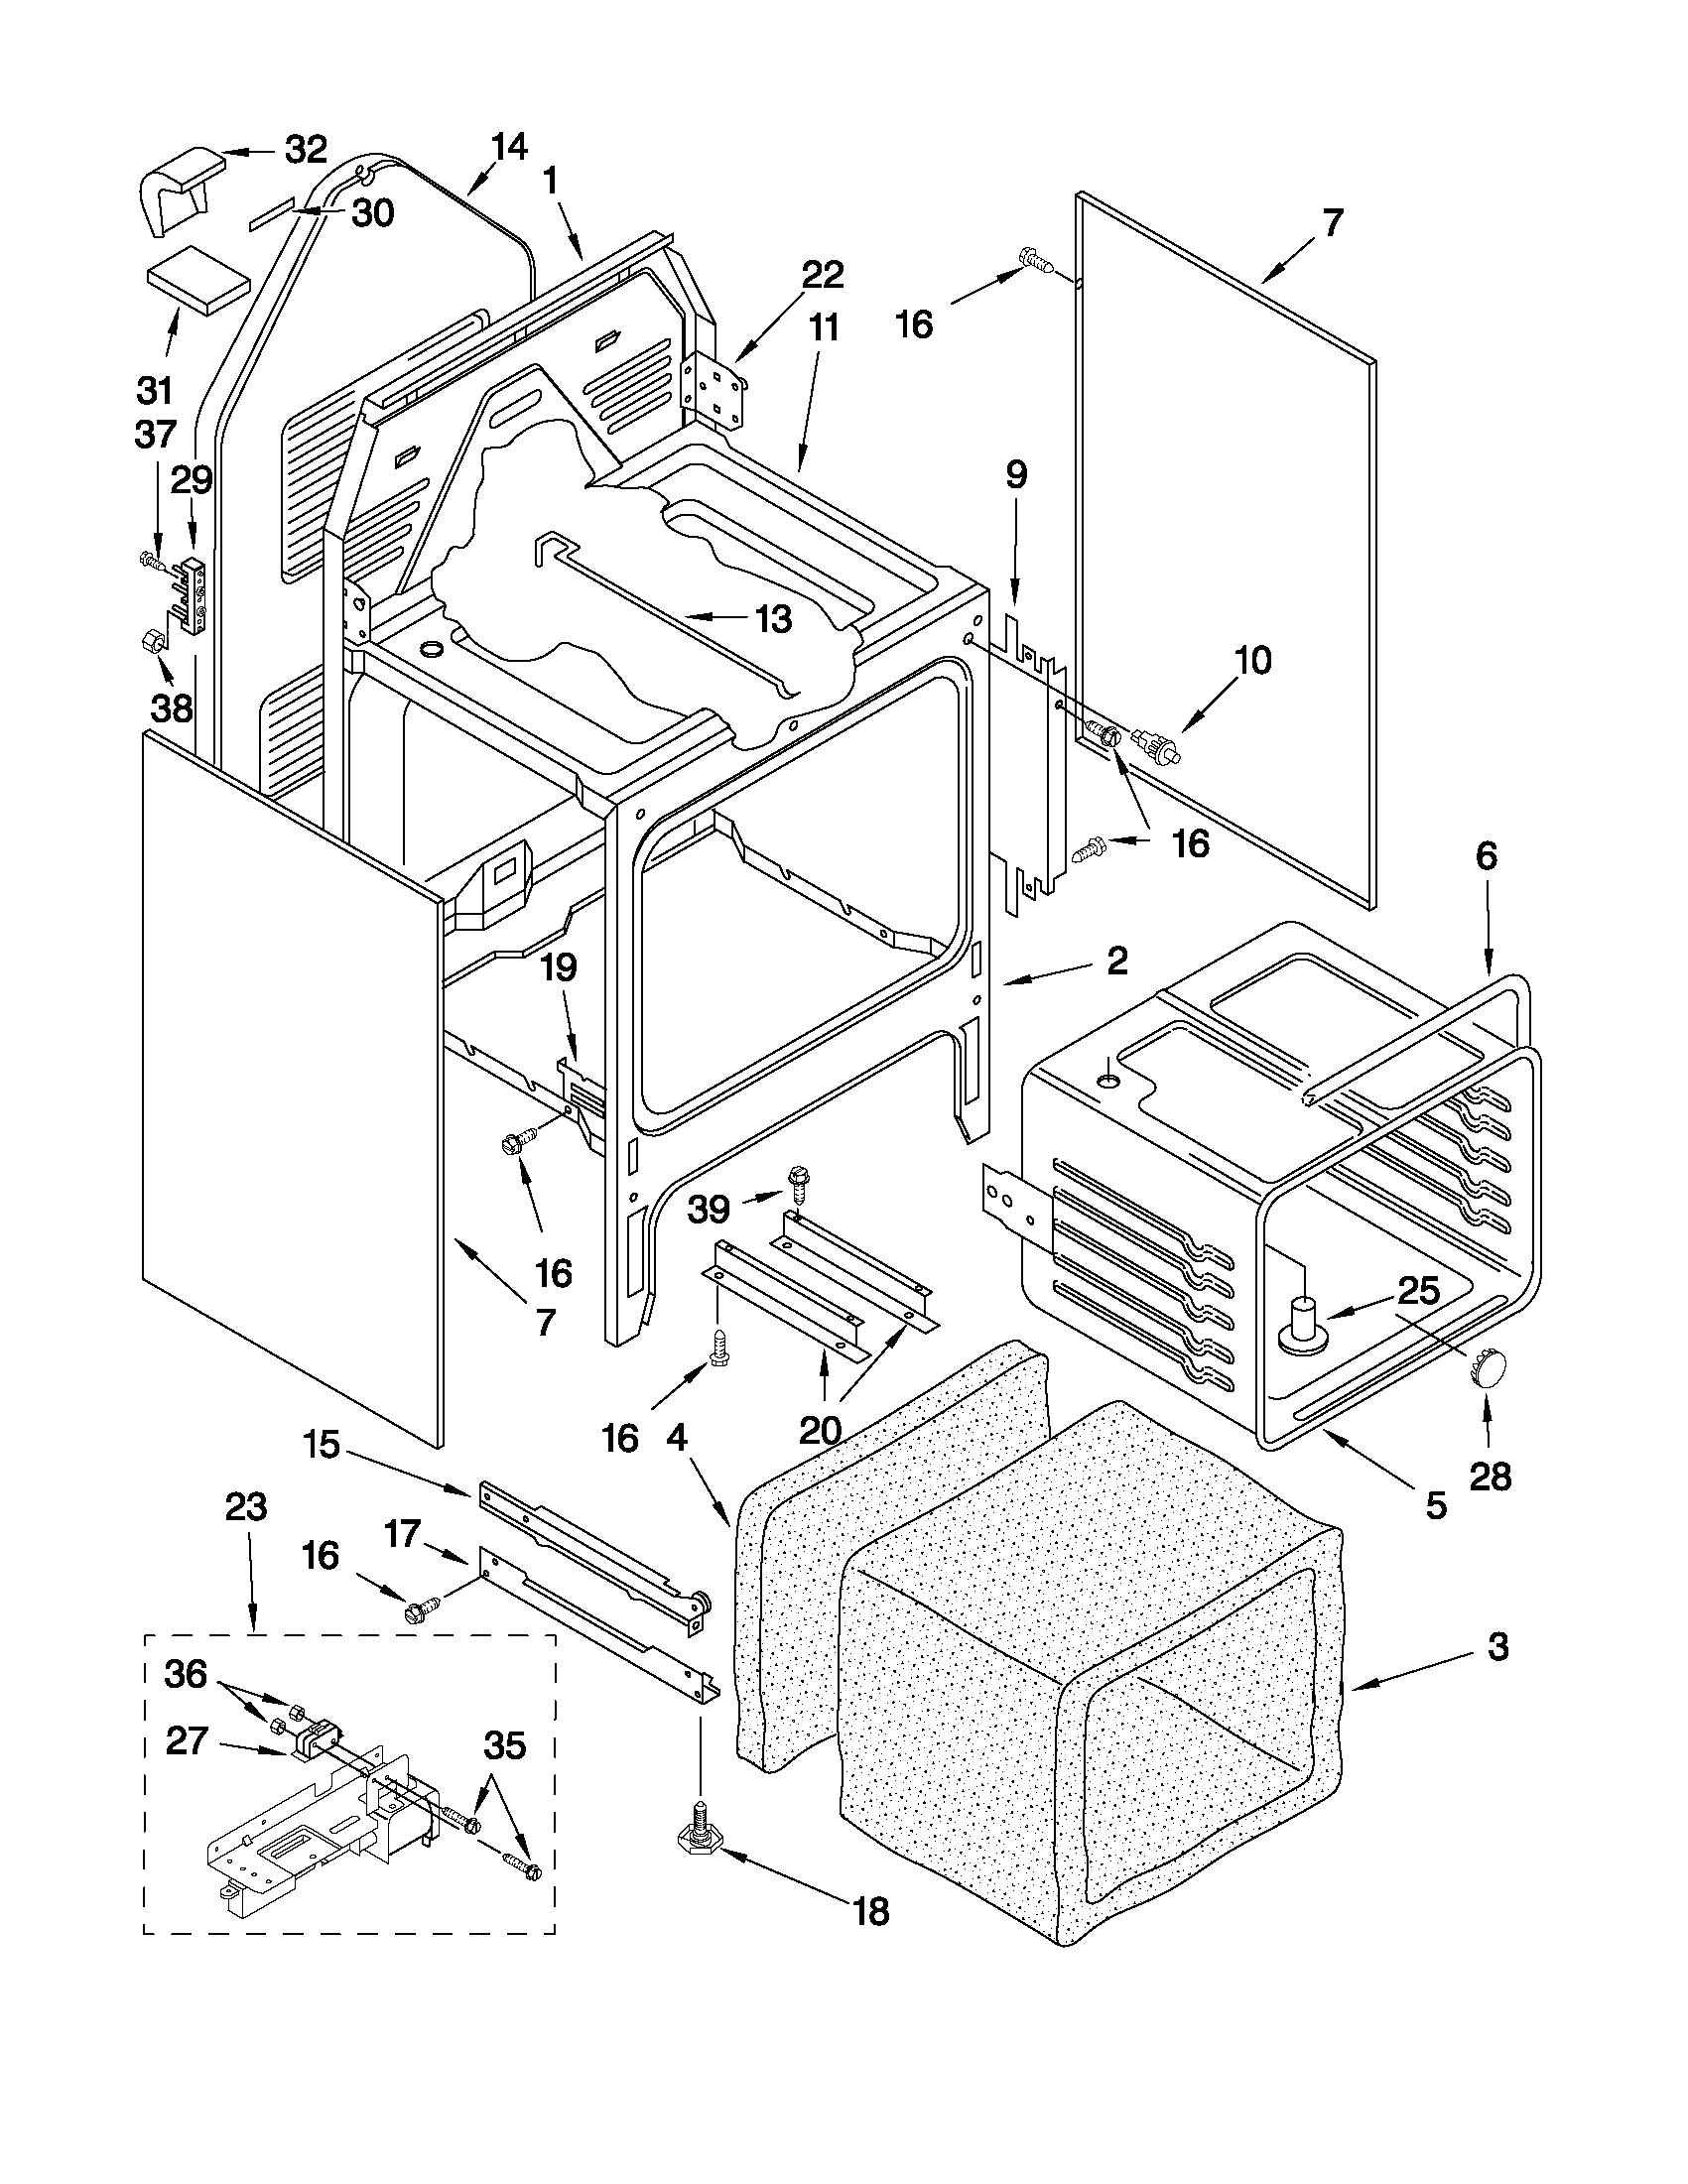 Ge Quiet Power 3 Dishwasher Parts Diagram